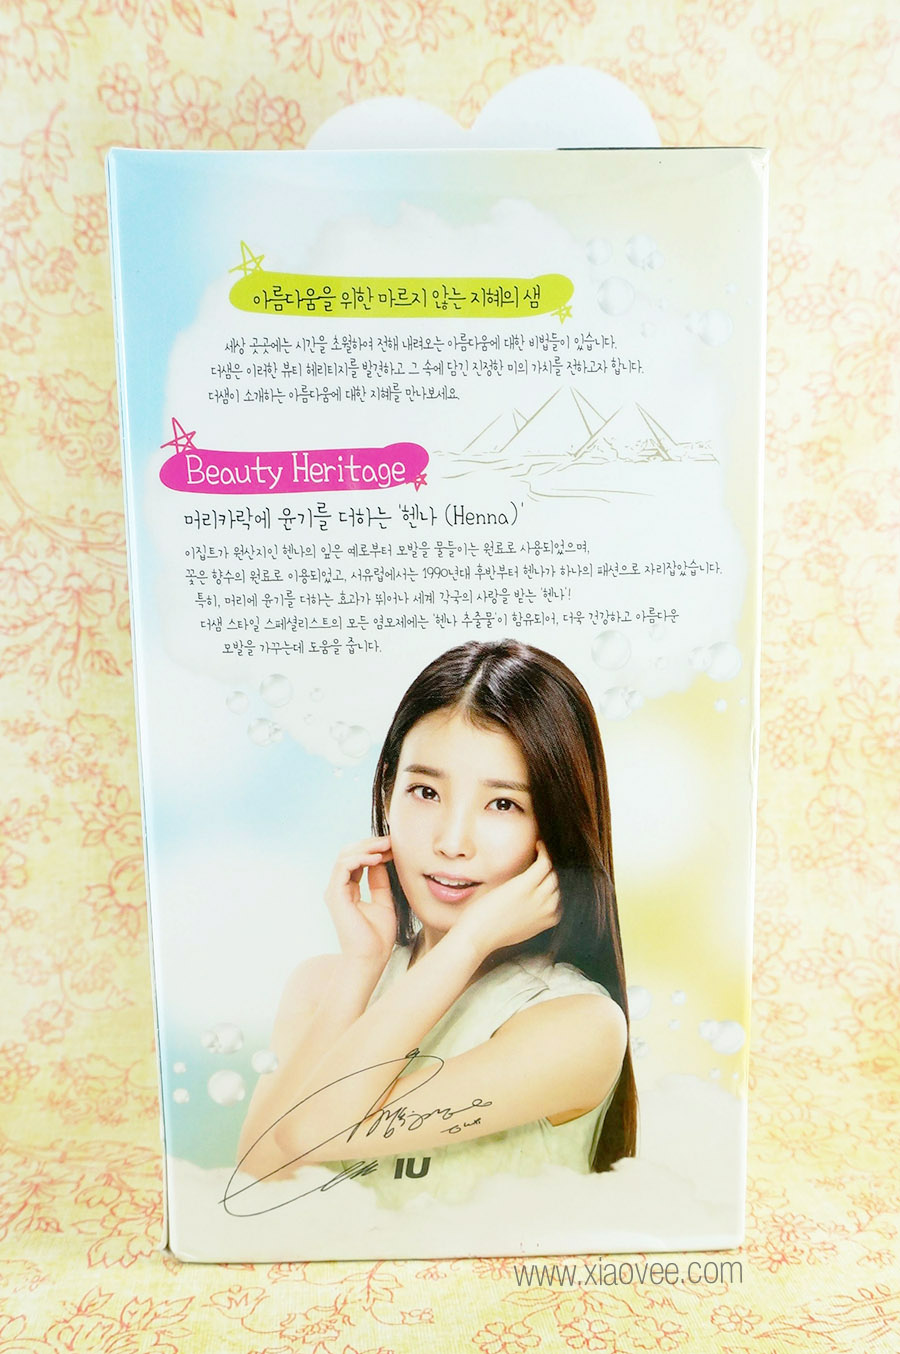 The Saem Style Specialist Easy Bubble Hair Coloring review, the saem hair coloring IU